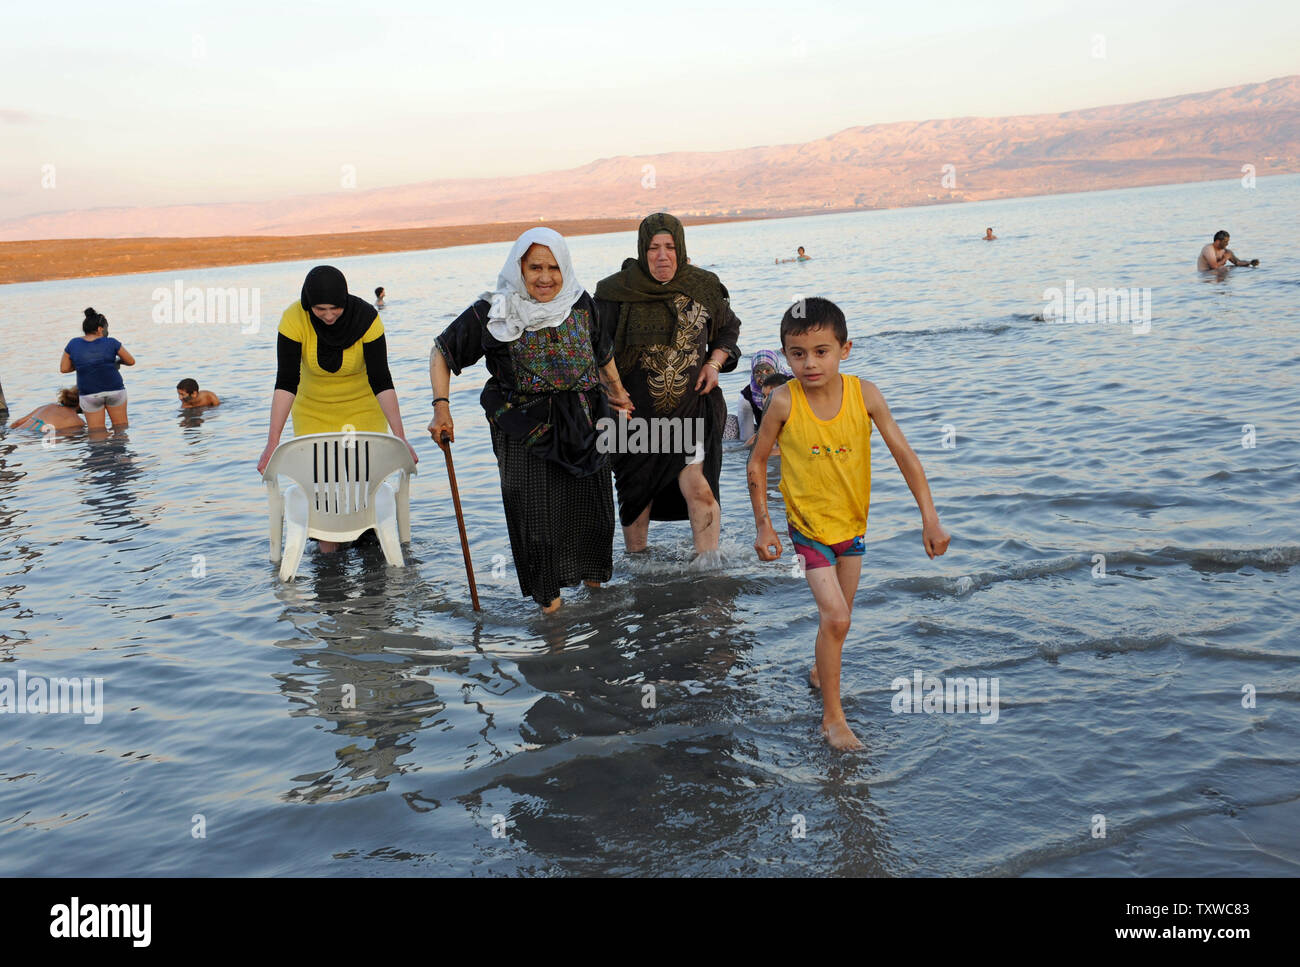 Palestinians walk out of the Dead Sea at Kalya Beach, West Bank, on the second day of the  Muslim festival Eid al-Adha, November 7, 2011. The Dead Sea is among the top 10 finalists in the International New 7 Wonders of Nature Campaign, which will conclude on Friday, 11.11.11.  UPI/Debbie Hill Stock Photo